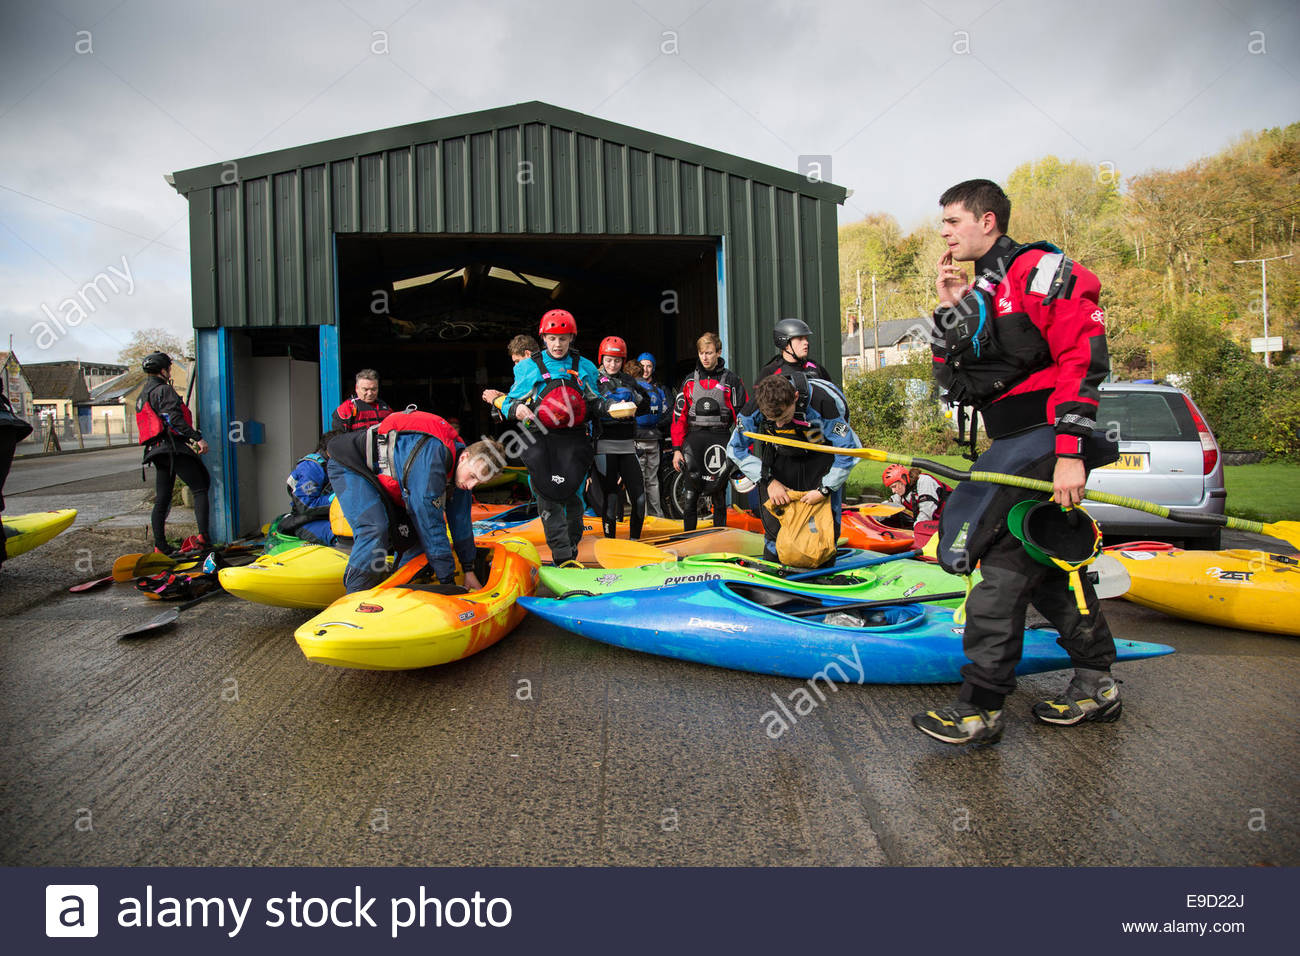 Llandysul, Wales, UK. 25th Oct, 2014. Hundreds of paddlers gather at Llandysul to enjoy the annual two day Teifi Stock Photo